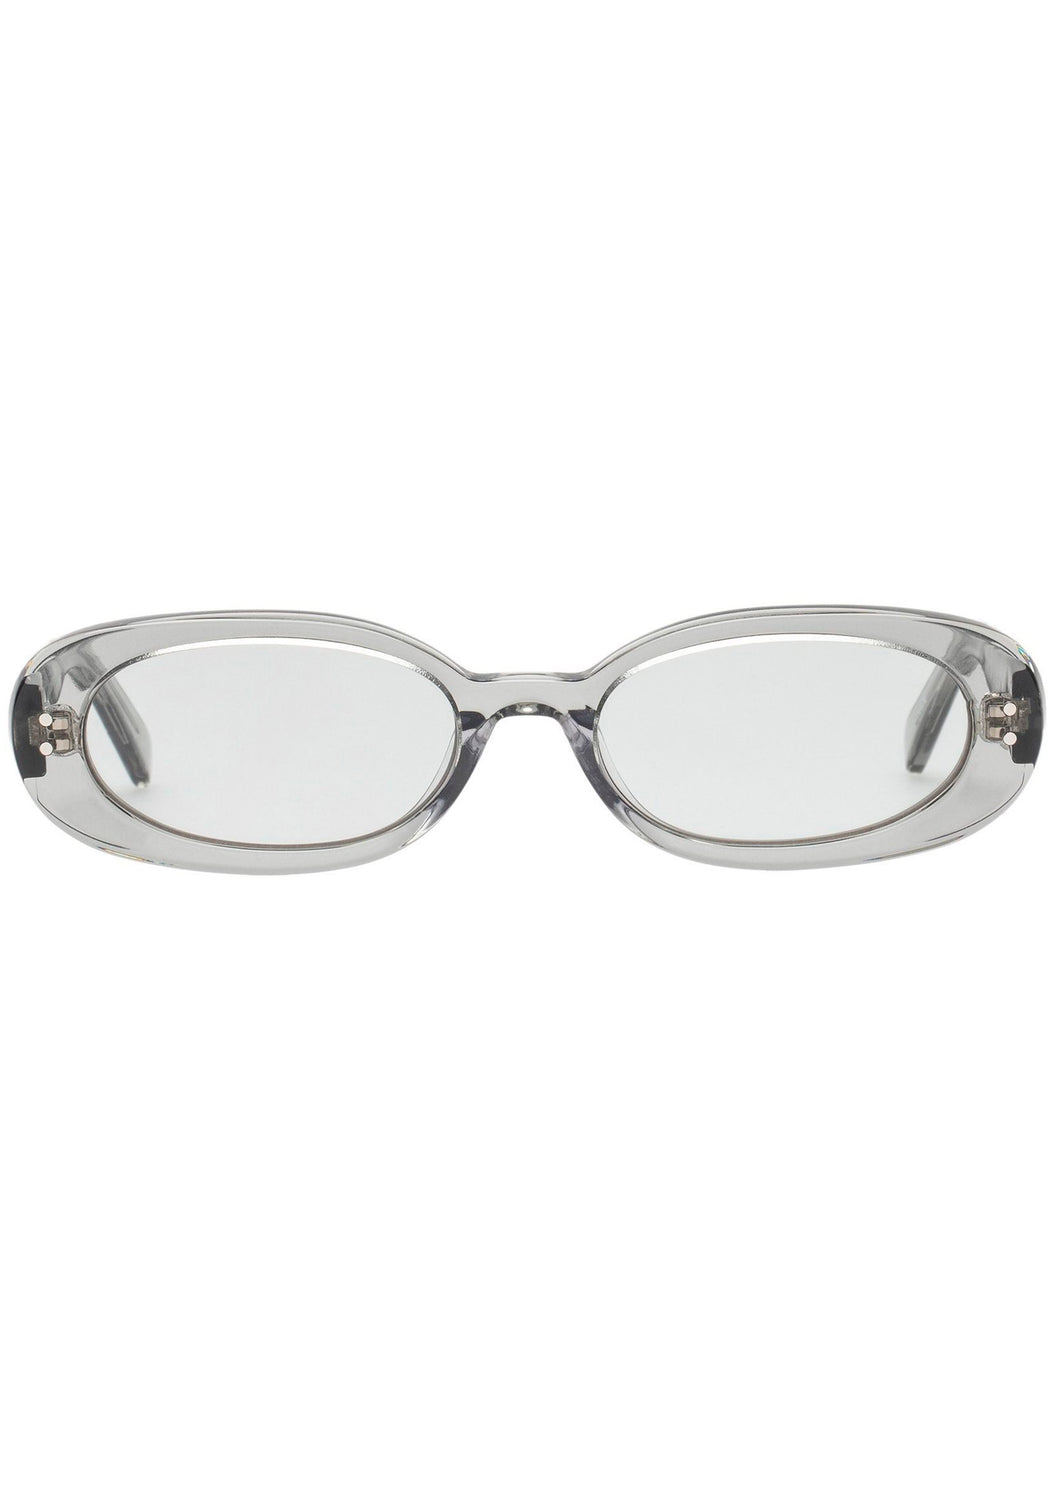 THE OUTLAW GREY SMOKE Le Specs